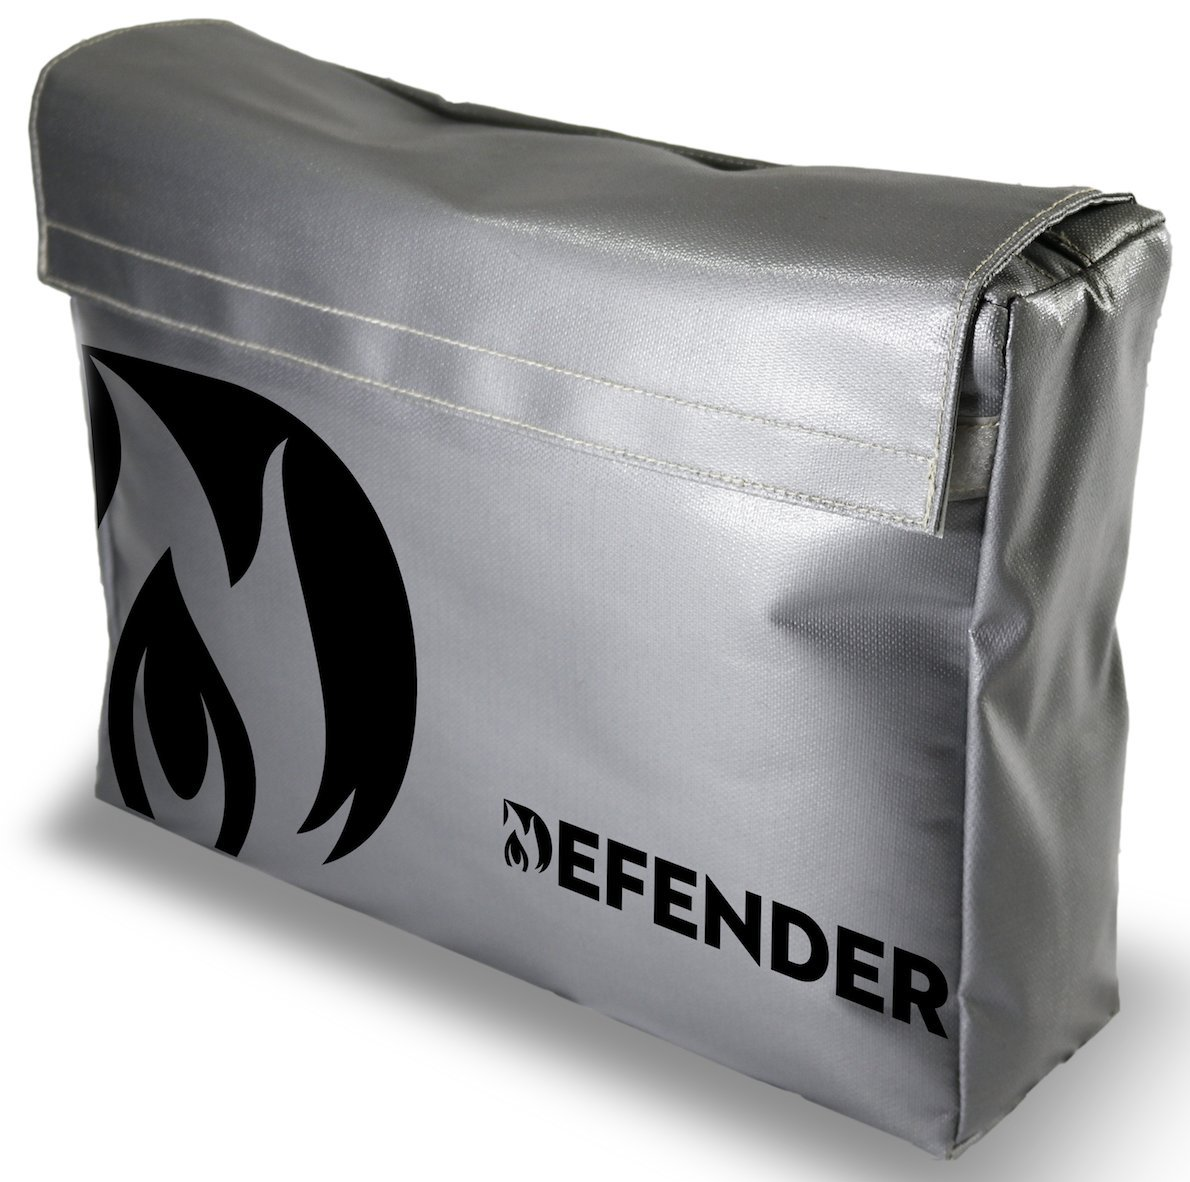 Defender Fireproof and Water Resistant Bag | Silicone Coated Fiberglass Non-Itchy | Double Closure to Keep Valuables Protected | 11x15x4 Size for Legal Documents, Currency, Jewelry, Etc. Lilacia Creations